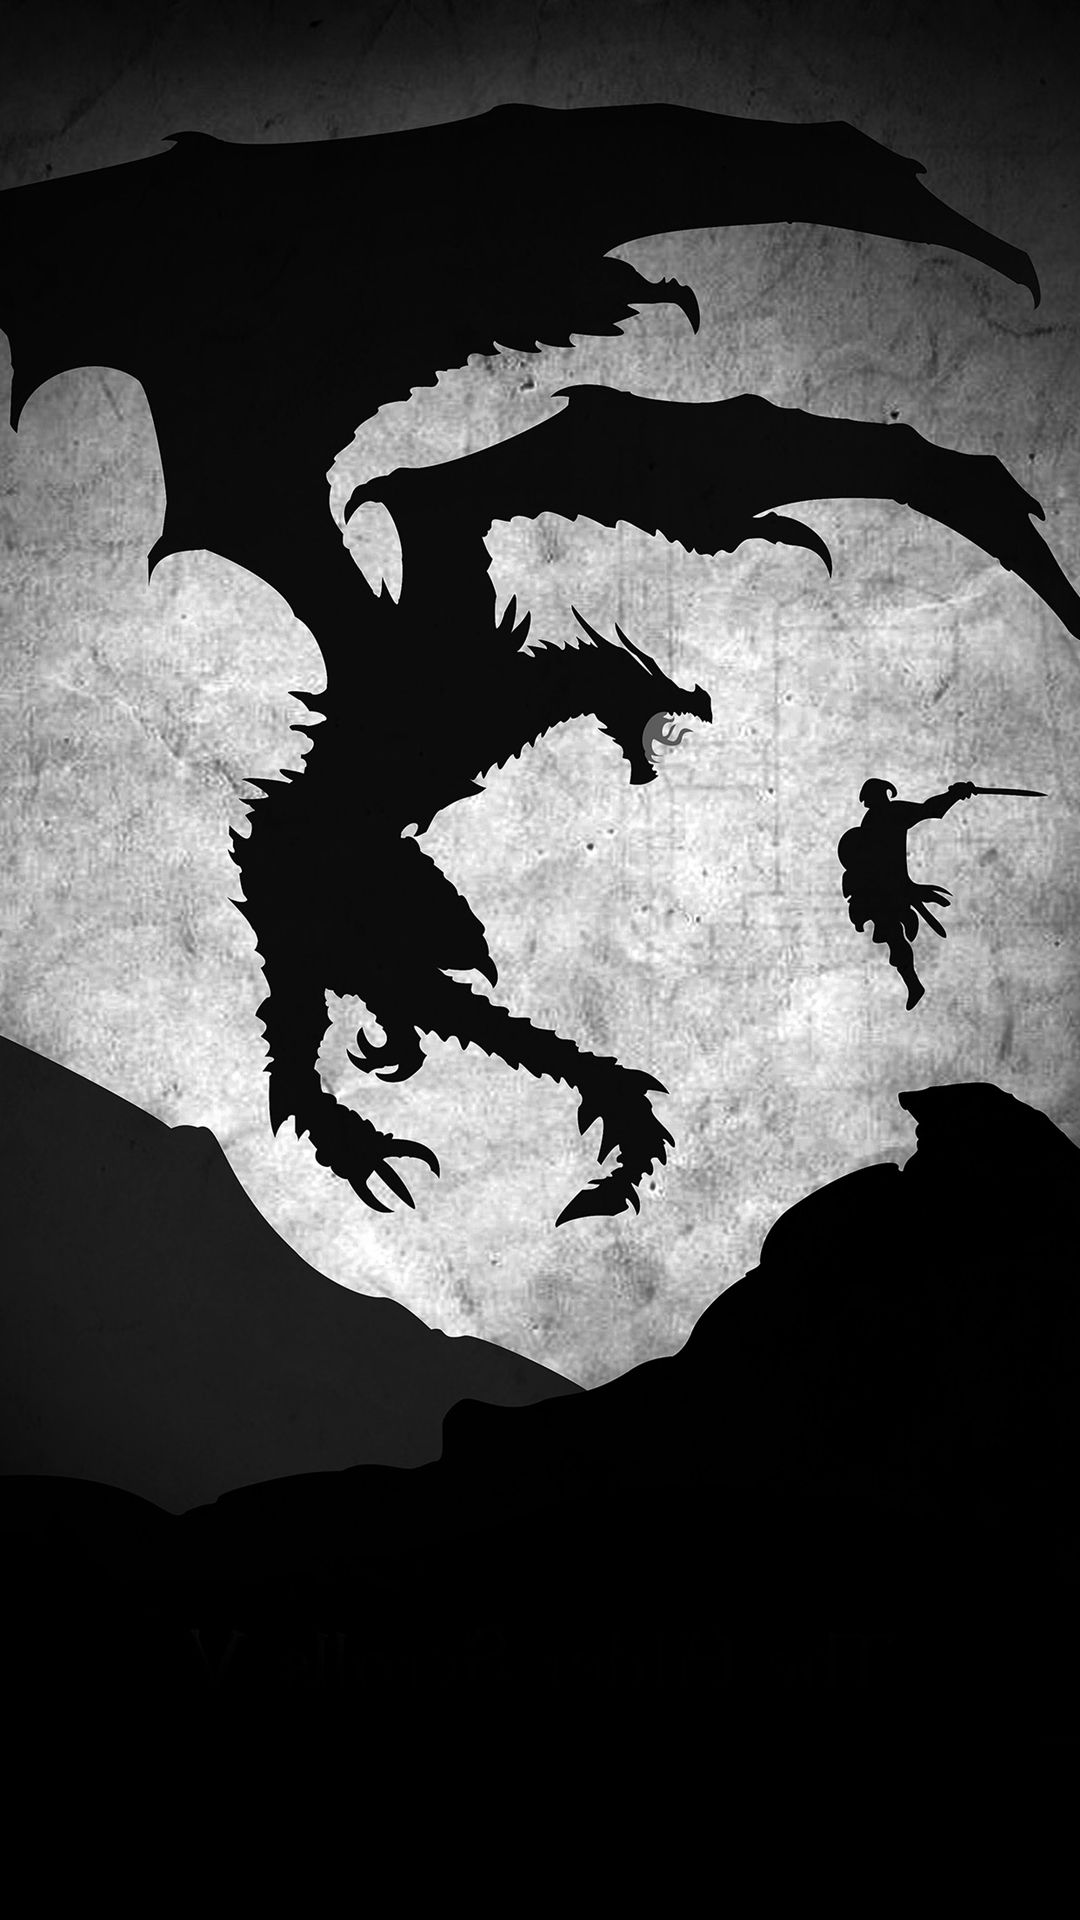 Skyrim Dragon Illustration Art Bw Iphone 6 Wallpaper Skyrim Wallpaper Skyrim Dragon Skyrim Wallpaper Iphone